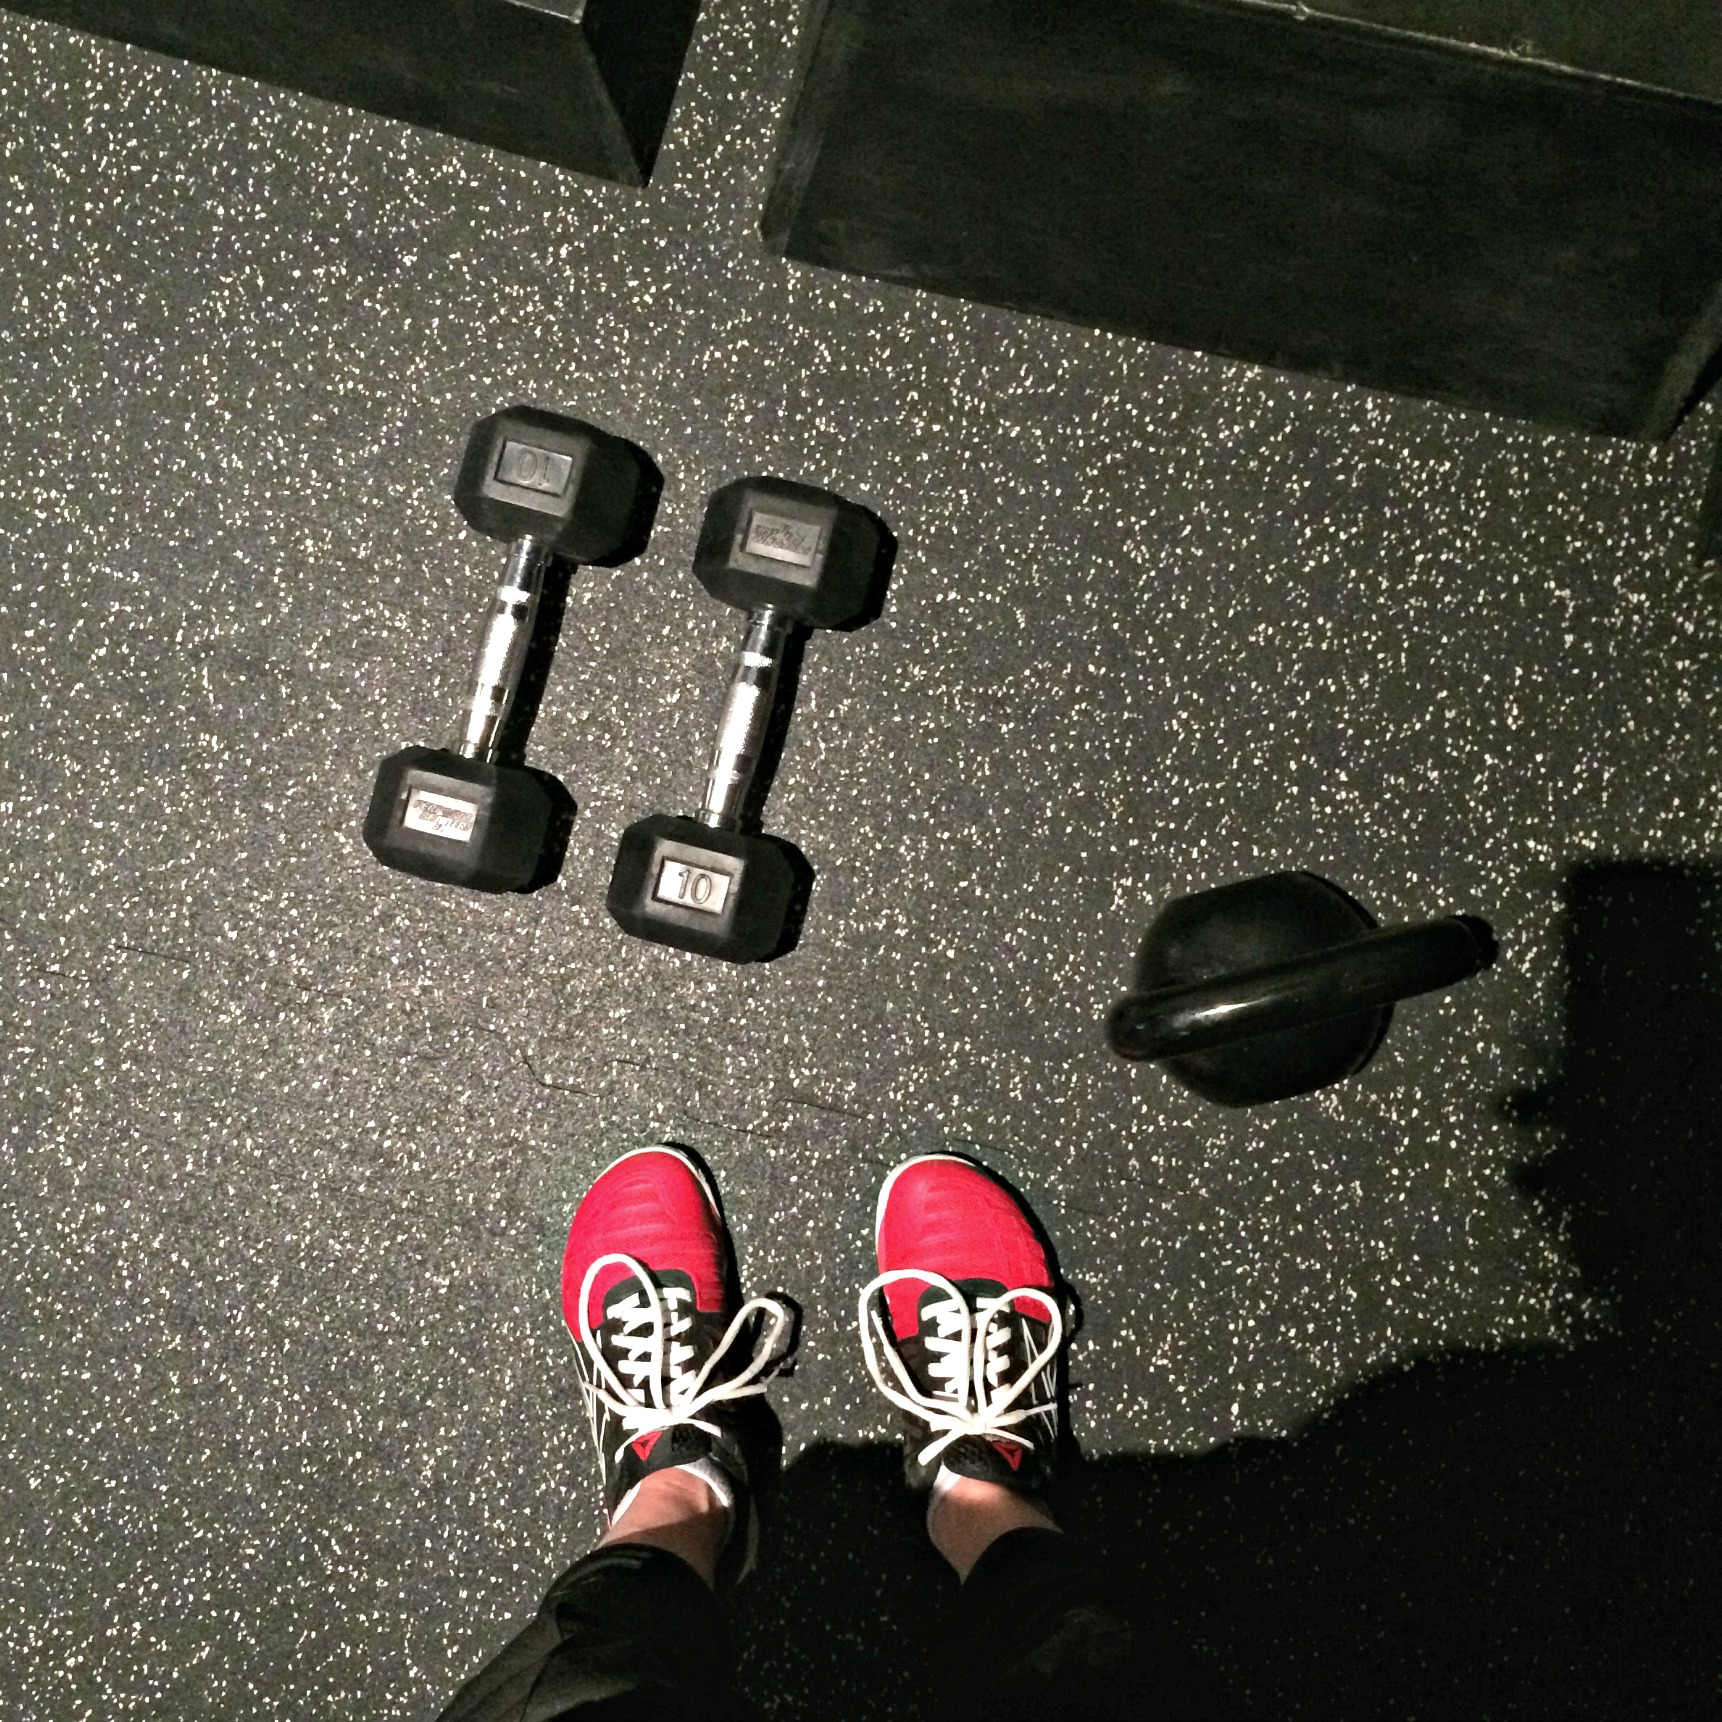 gym workout with dumbbells kettlebells and boxes